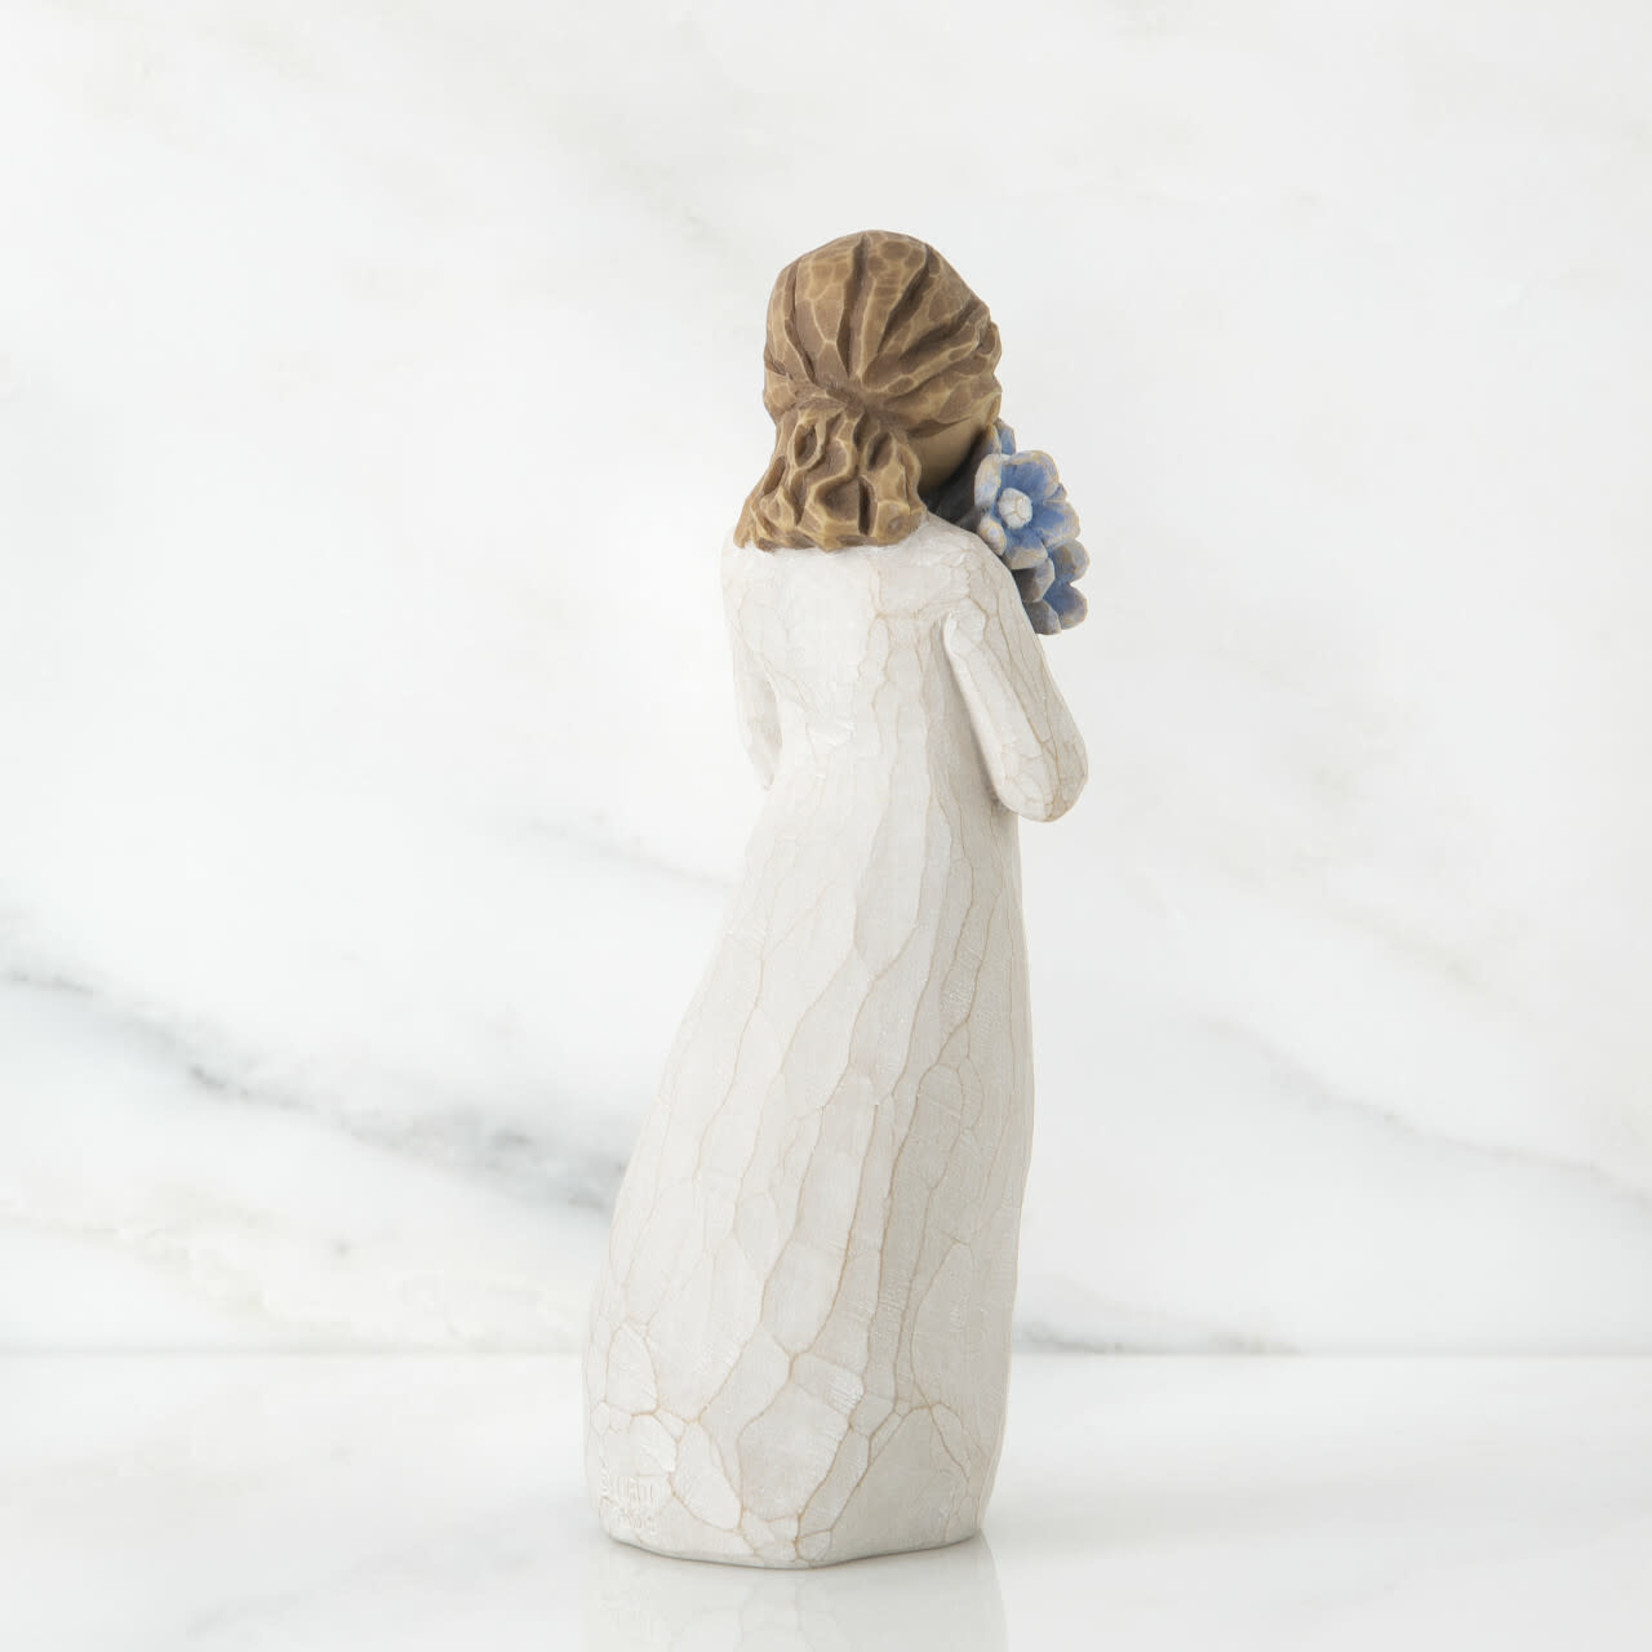 FORGET-ME-NOT FIGURINE